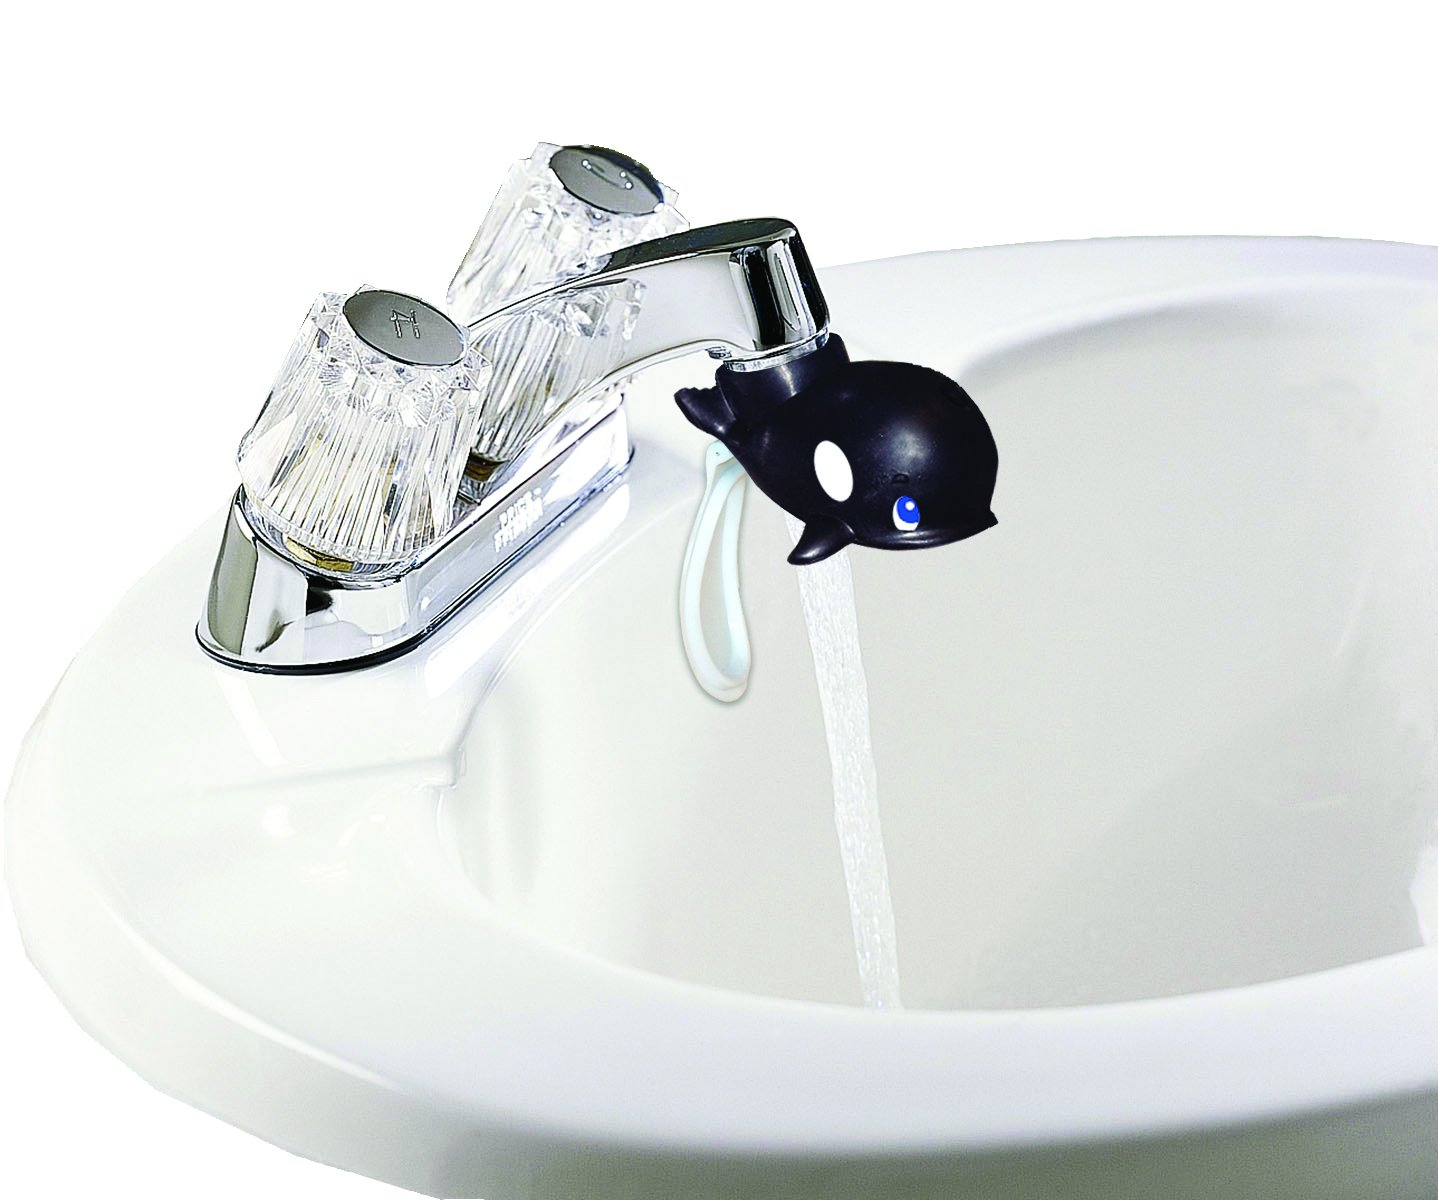 Jokari Faucet Drinking Fountain Makes Toothbrush Time Fun for All Ages Best Kids Water Dispenser One Step Installation Takes Seconds Whale Saves Mess /& Water 3 Pack